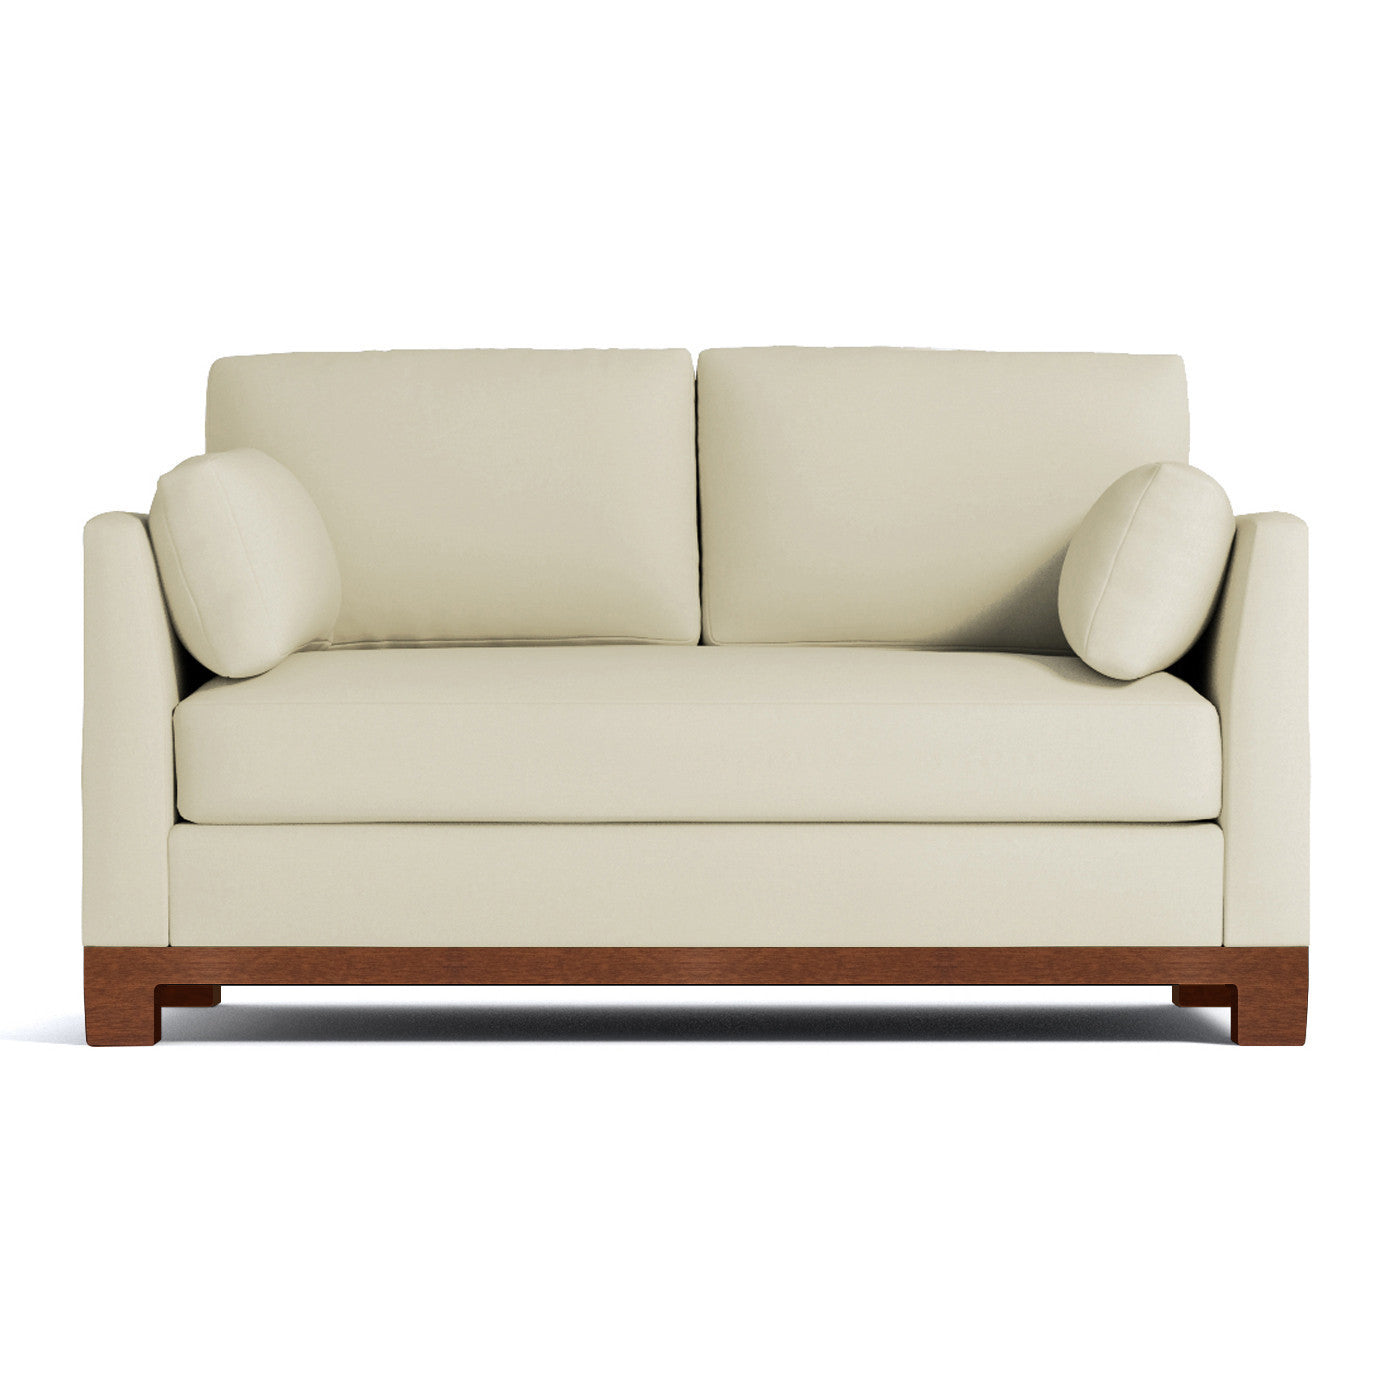 Avalon Apartment Size Sleeper Sofa - Choice of Fabrics – Apt2B